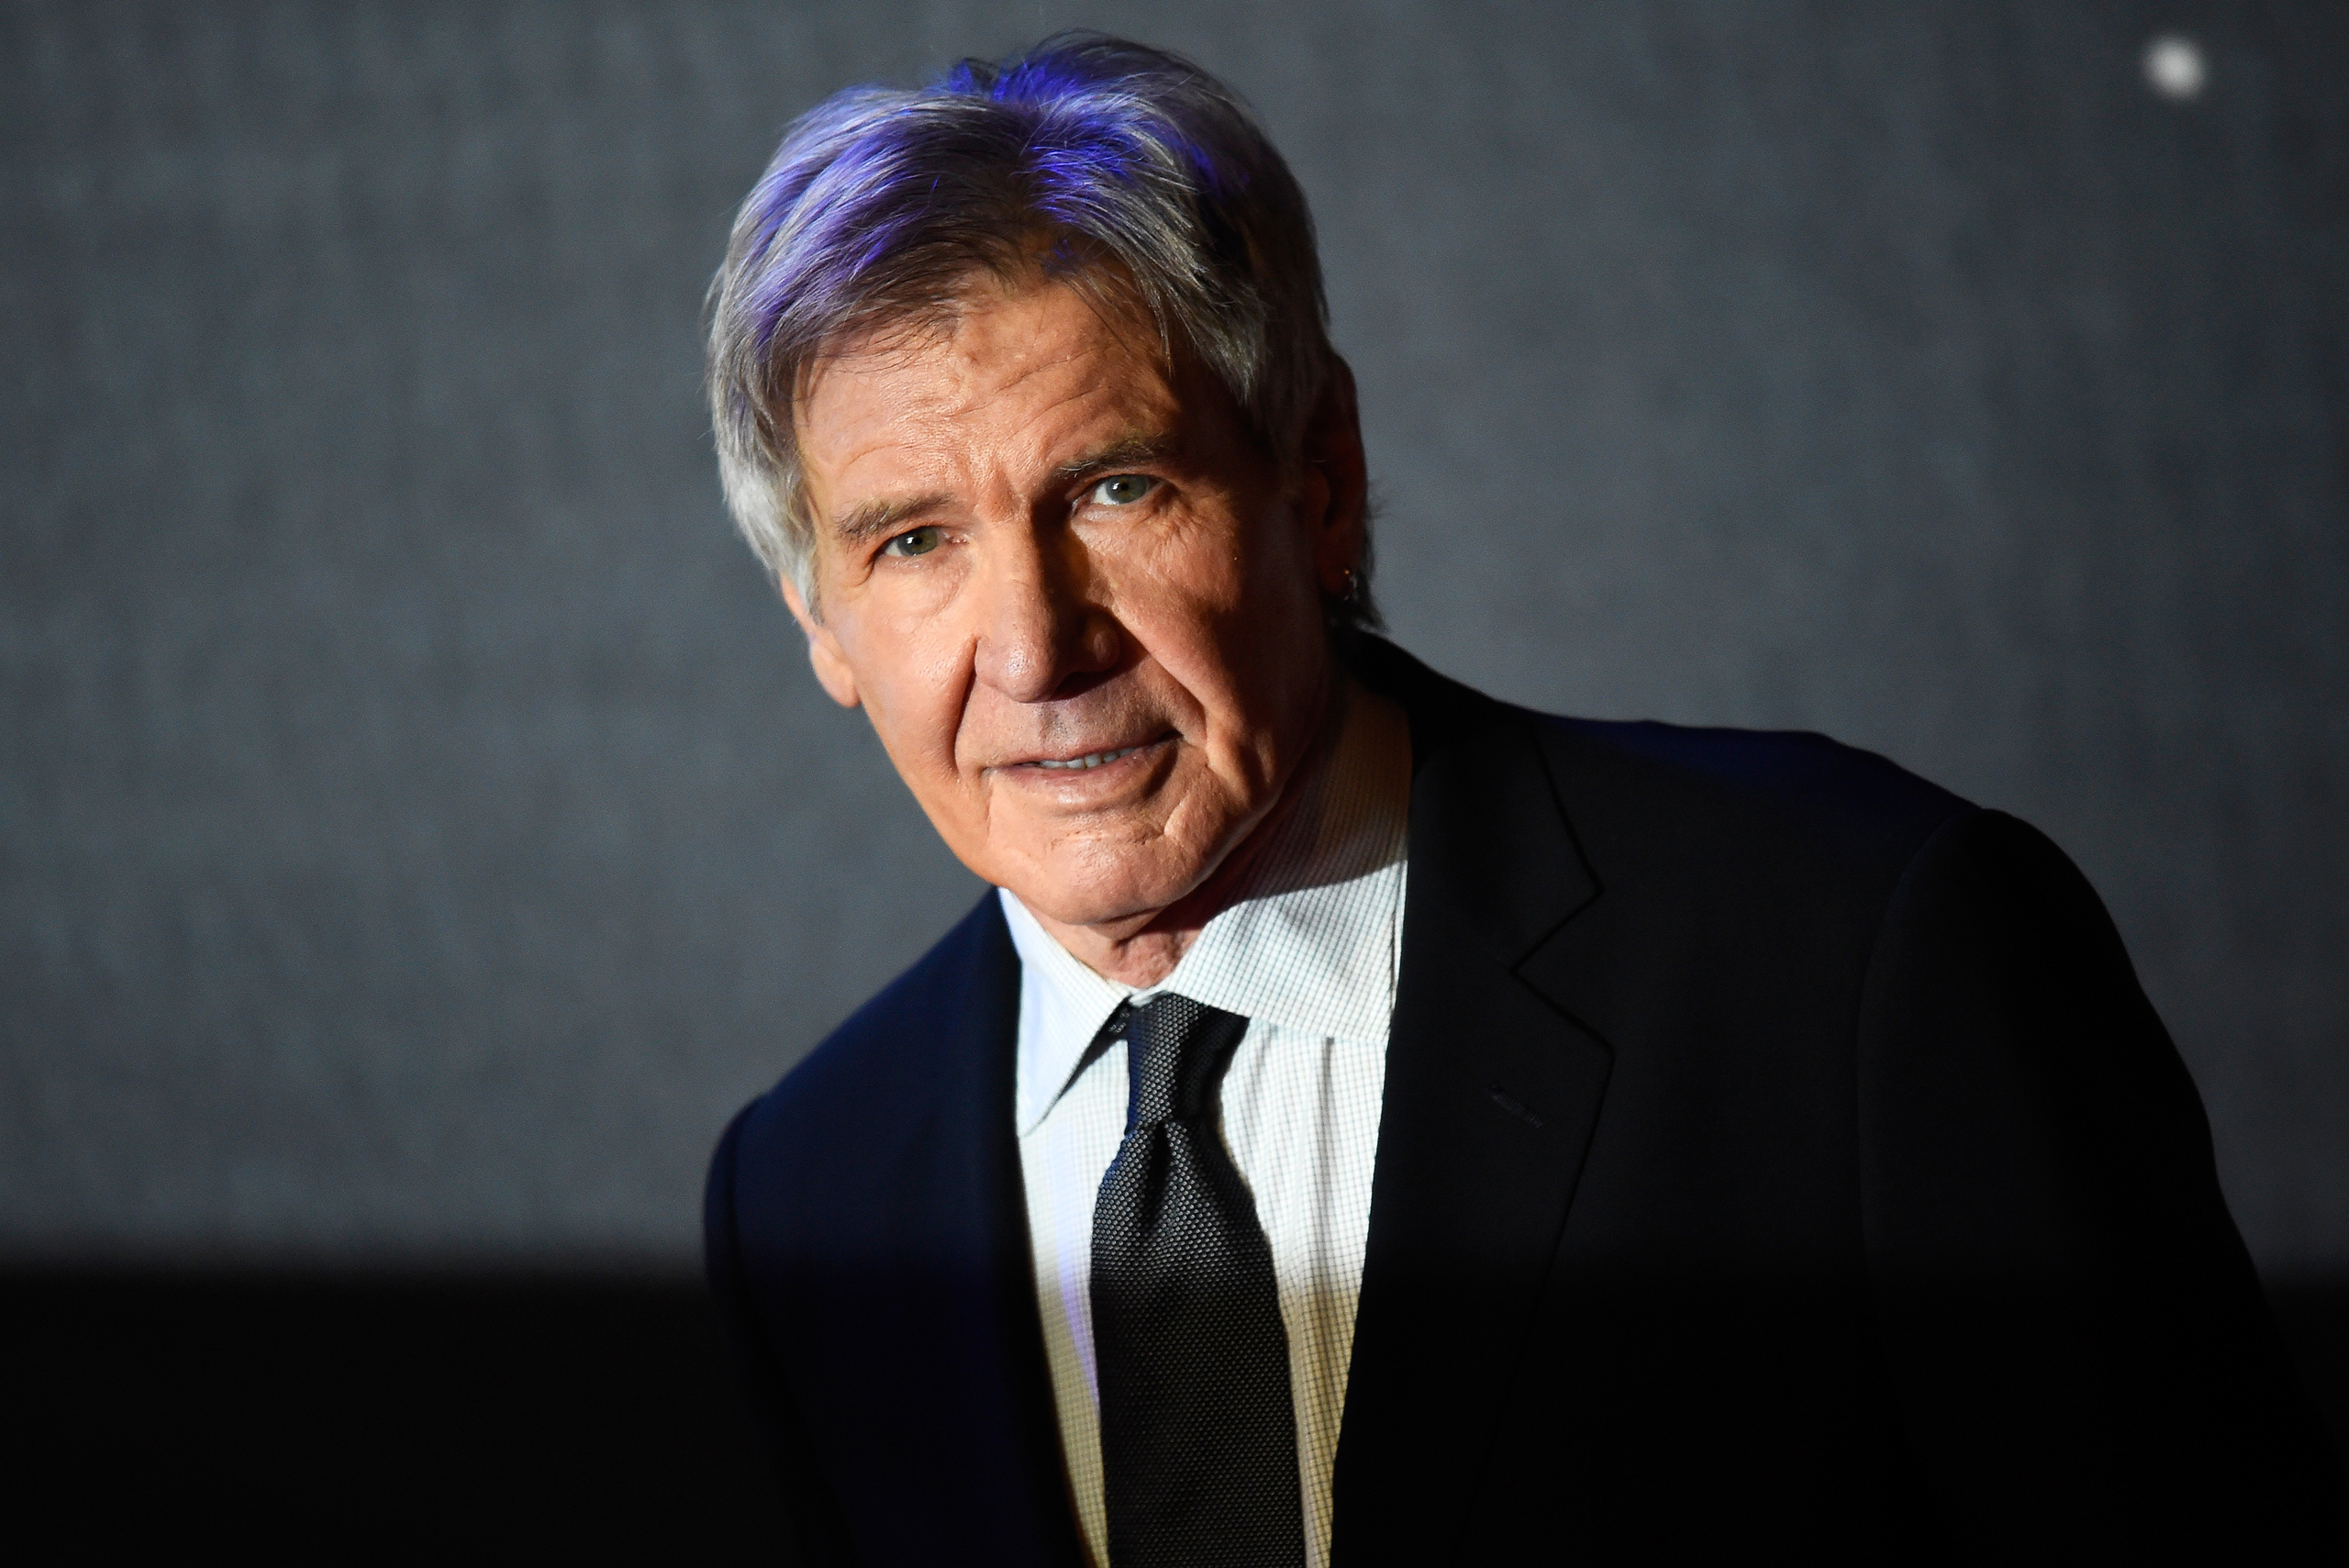 Harrison Ford arrives at the European Premiere of Star Wars, The Force Awakens in Leicester Square, London, on Dec. 16, 2015.